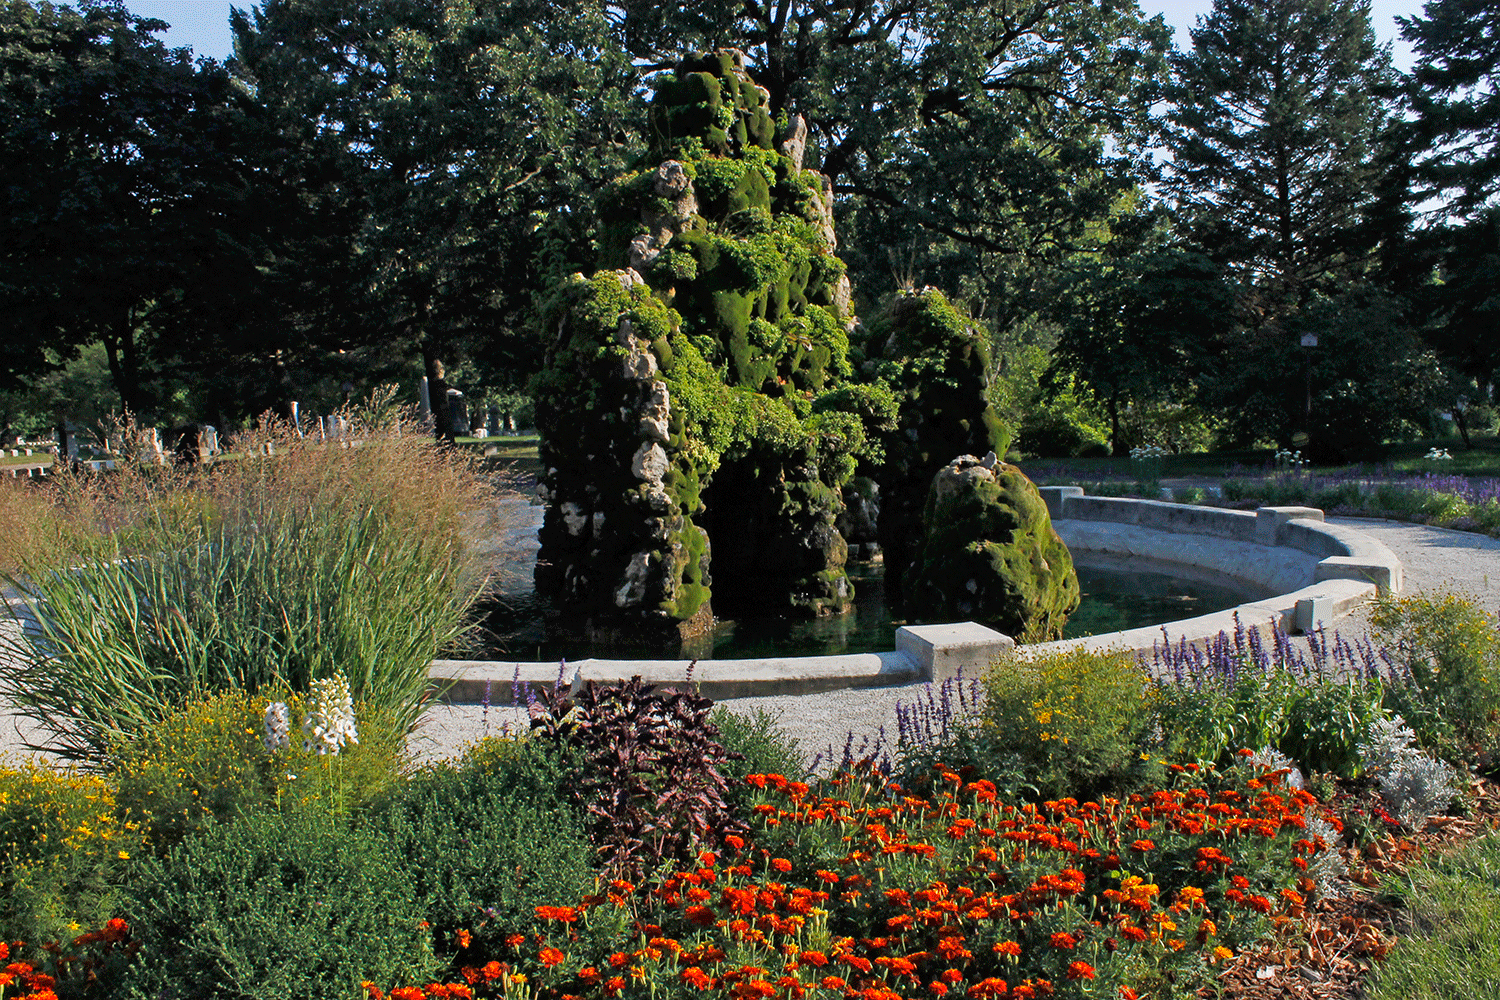 """Established in 1850 by the founders of Milwaukee, Forest Home now embraces 200 acres of dignified beauty with more undeveloped land than the total area of most cemeteries in the United States. Our historical significance has earned Forest Home the designation as an official Milwaukee landmark & a listing on the National Registry of Historic Places. Forest Home is a rare """"Garden Cemetery"""" with sun-graced grass, fountains, lake, thousands of trees & roads winding through soothing English…"""